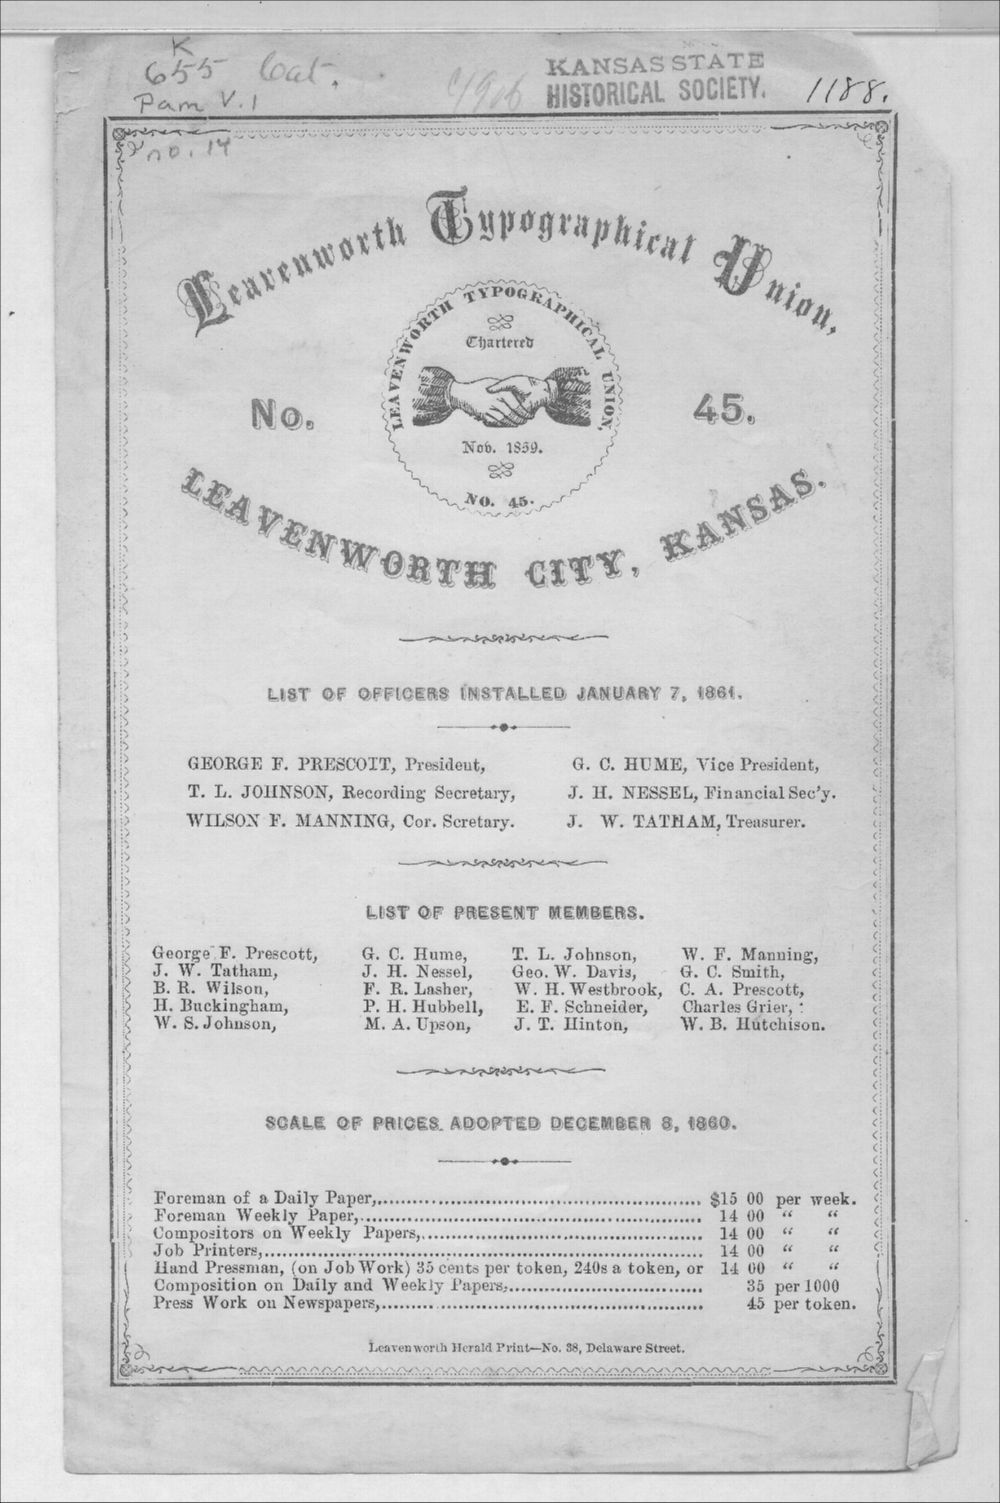 Leavenworth Typographical Union No. 45 list of officers